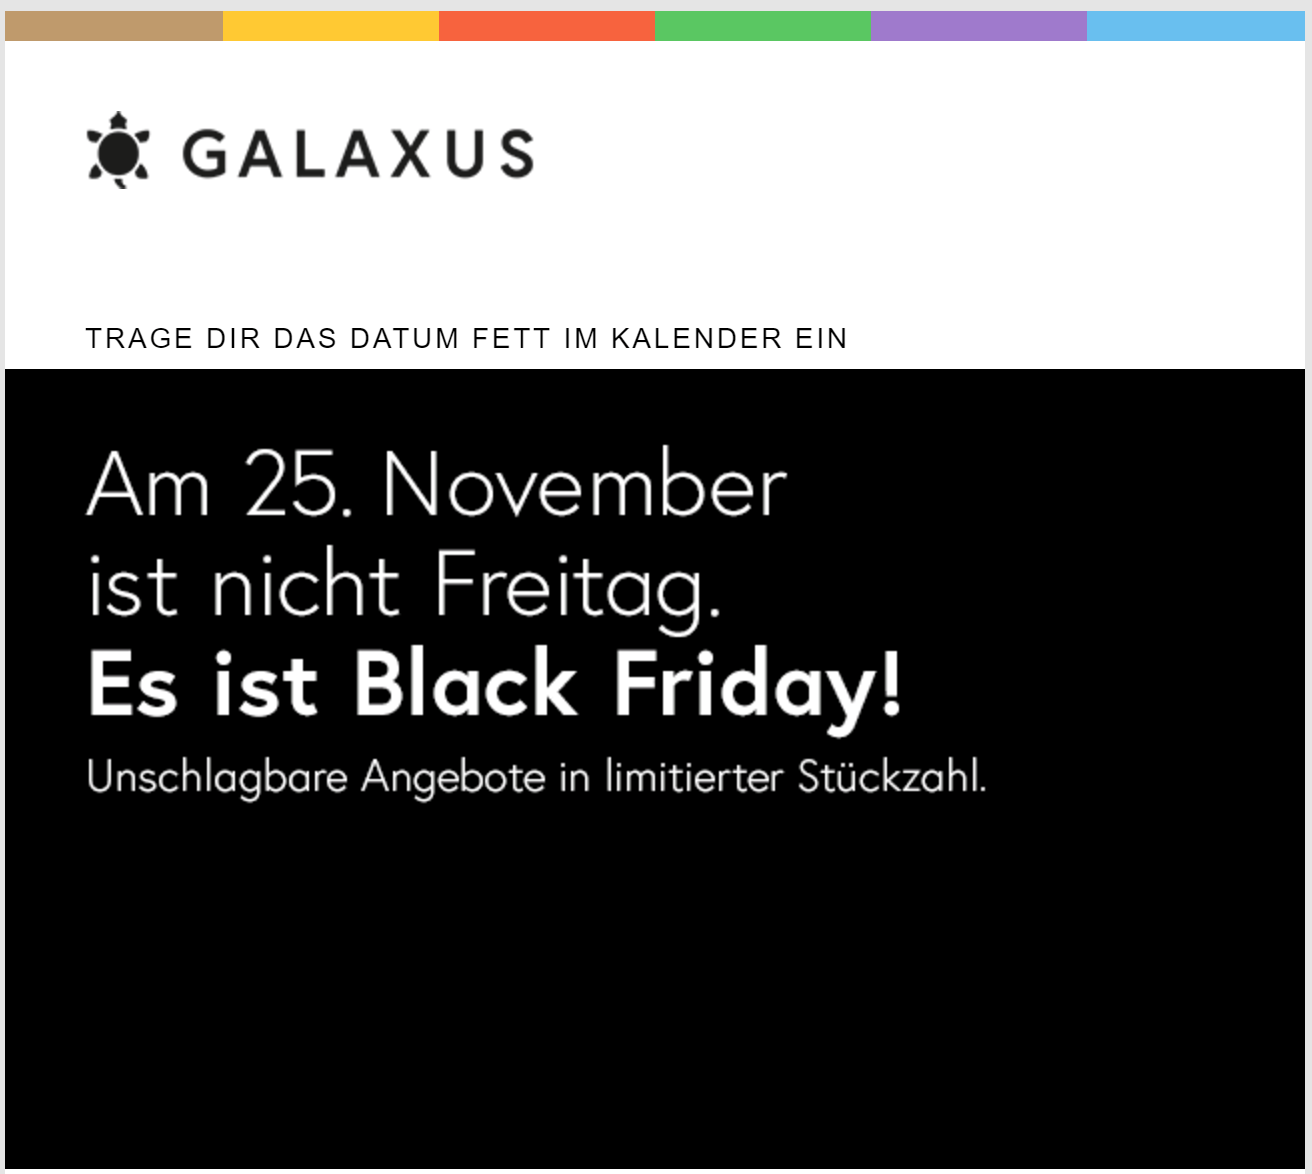 Black Friday Wann Galaxus Black Friday 2019 Die Übersicht